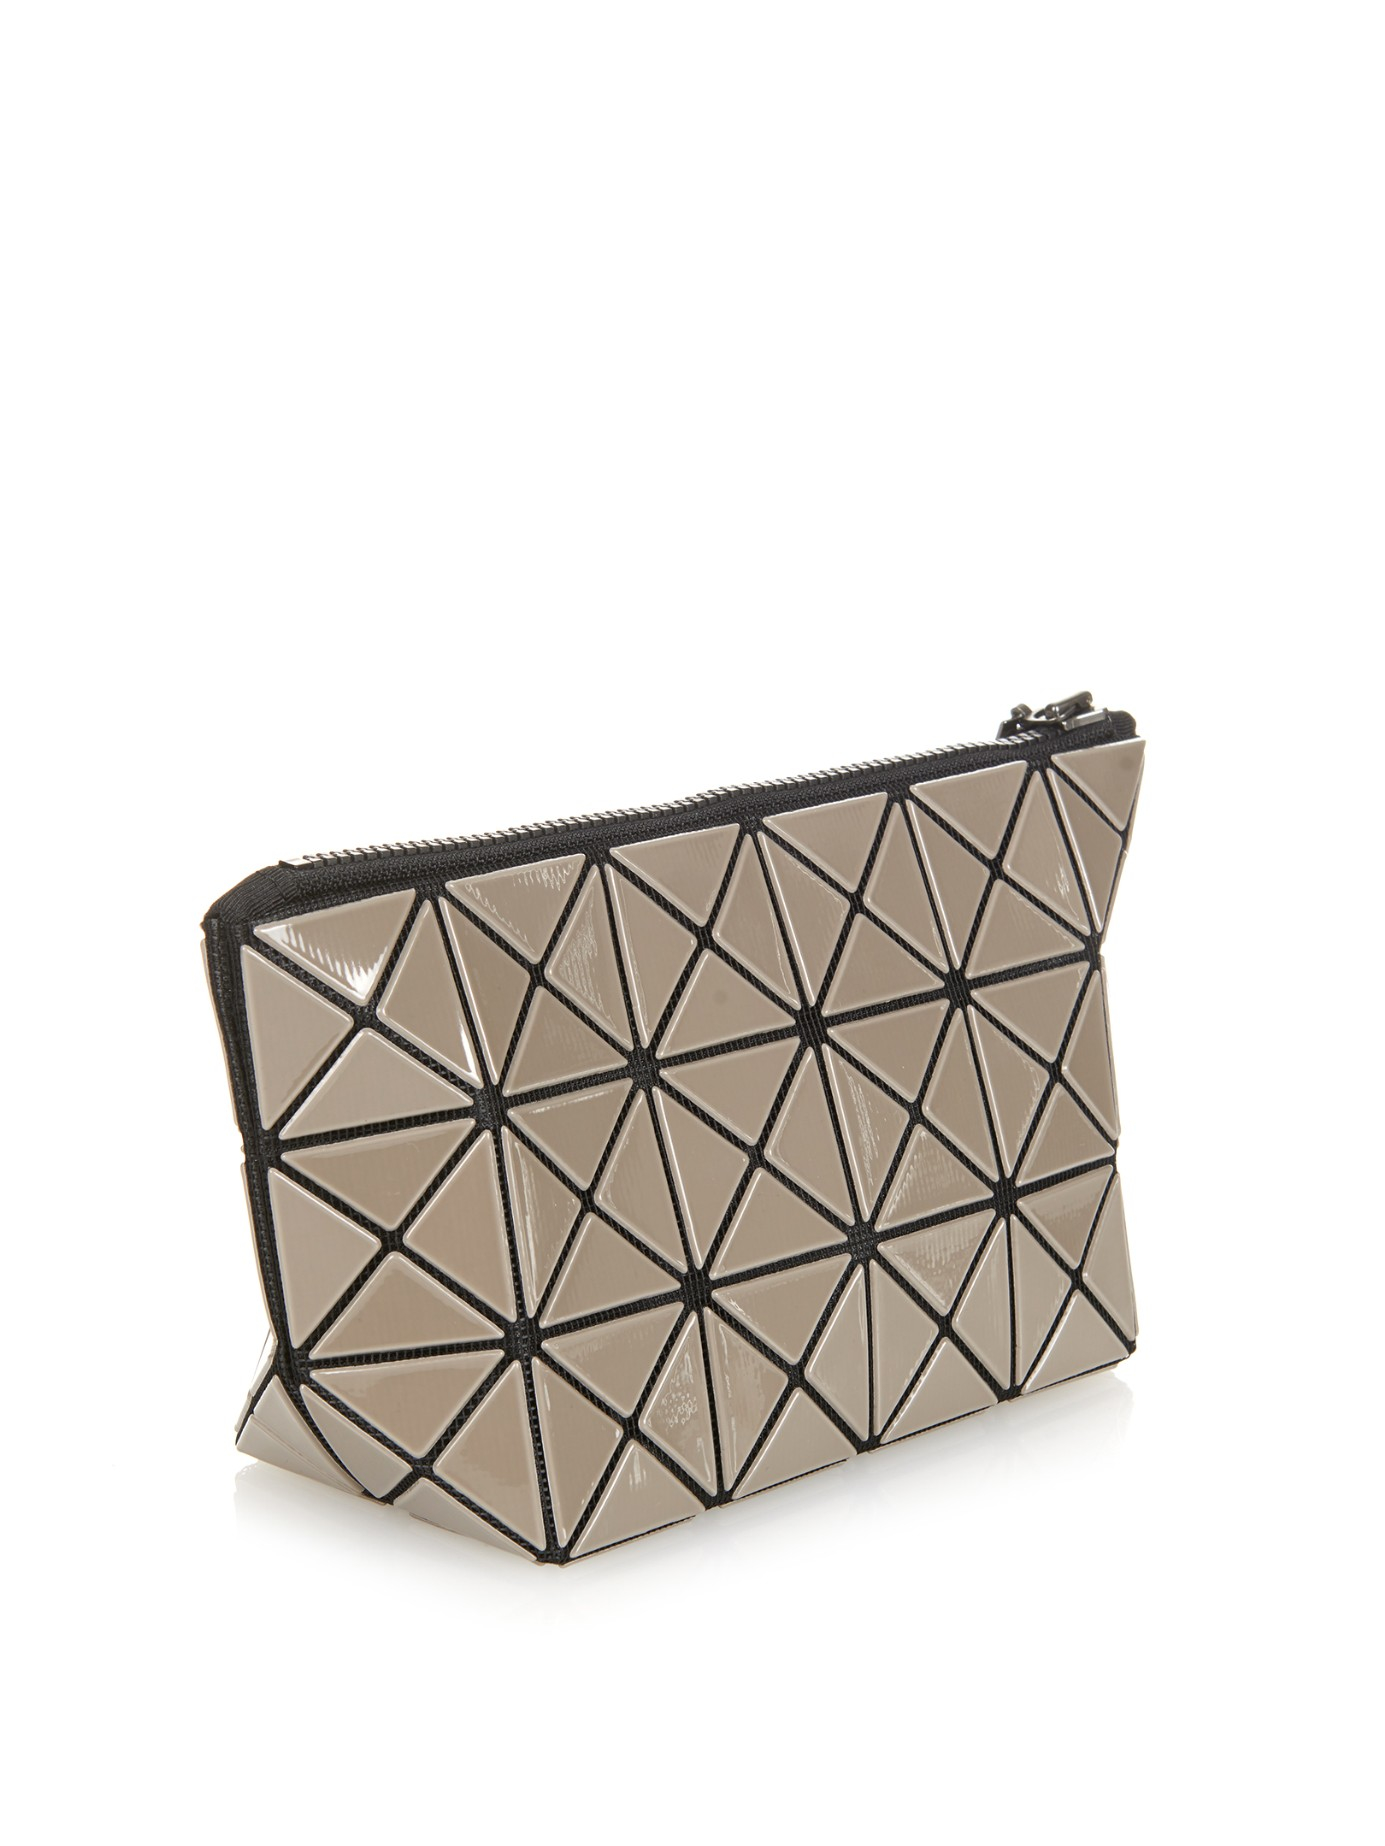 Lyst - Bao Bao Issey Miyake Lucent Basic Cosmetics Case in Gray 7347863d28